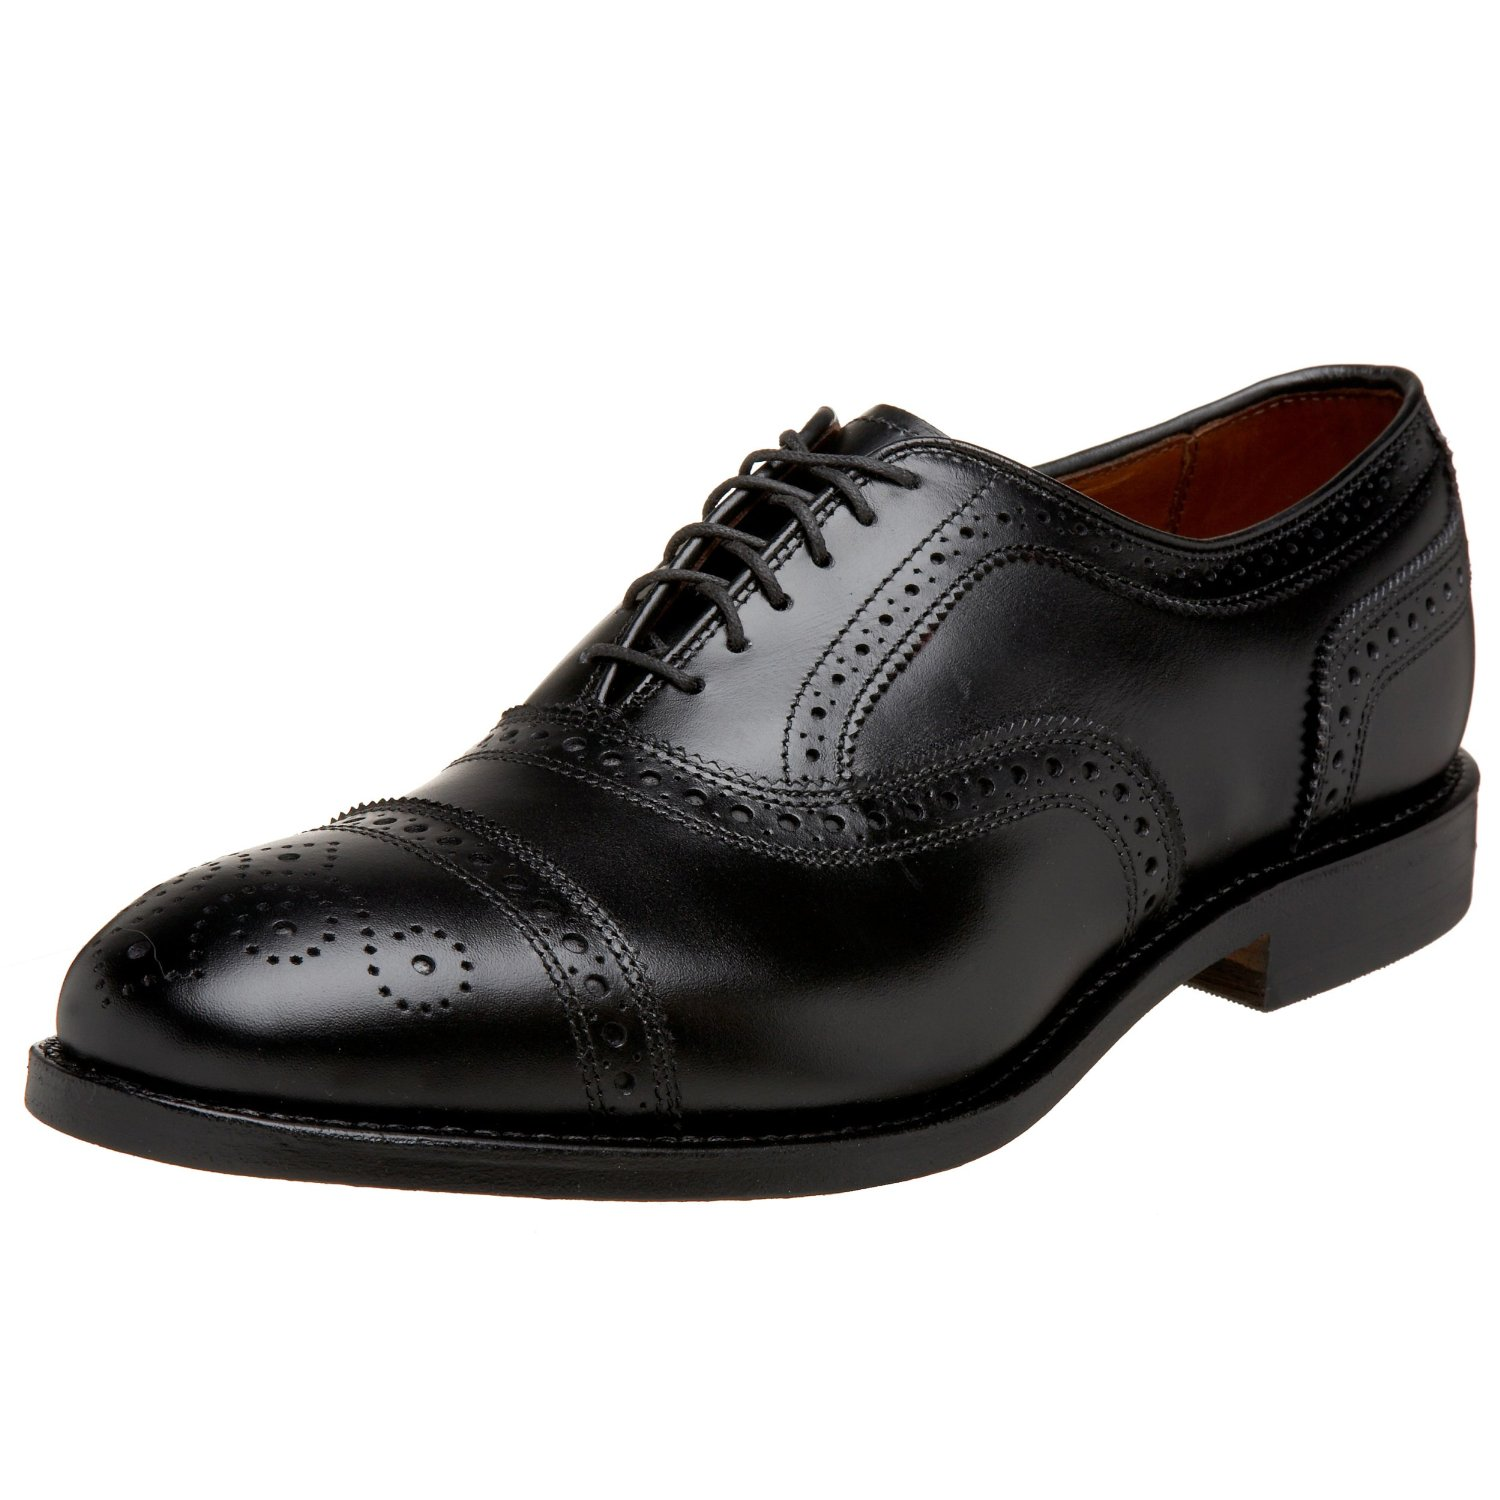 edmonds men Free shipping on allen edmonds men's shoes at nordstromcom shop for boots, loafers, oxfords and more totally free shipping and returns.